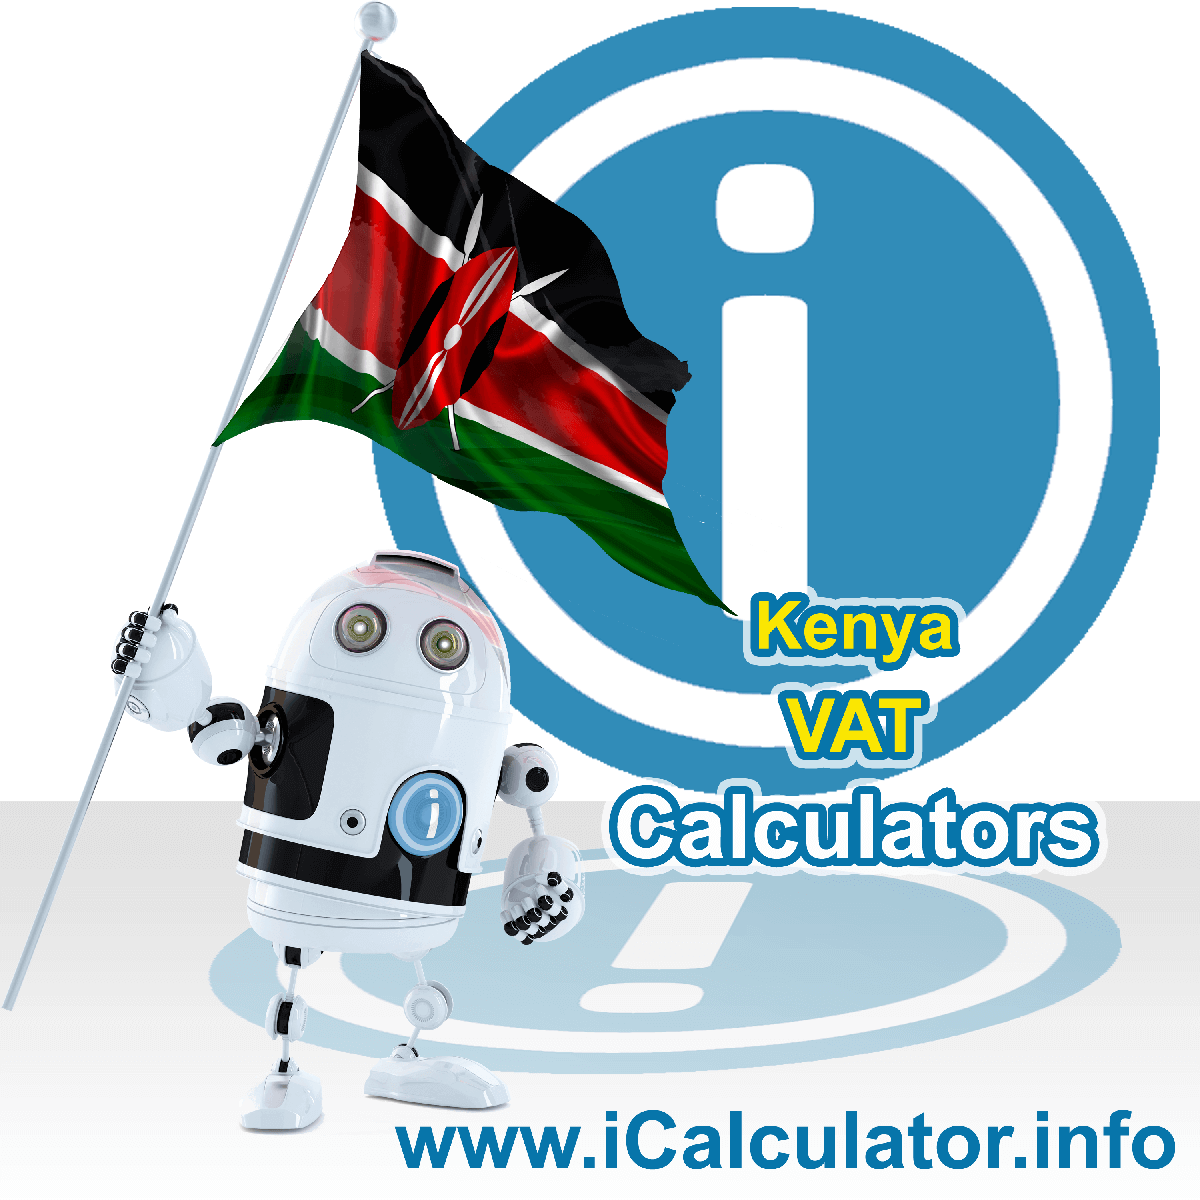 Kenya VAT Calculator. This image shows the Kenya flag and information relating to the VAT formula used for calculating Value Added Tax in Kenya using the Kenya VAT Calculator in 2020